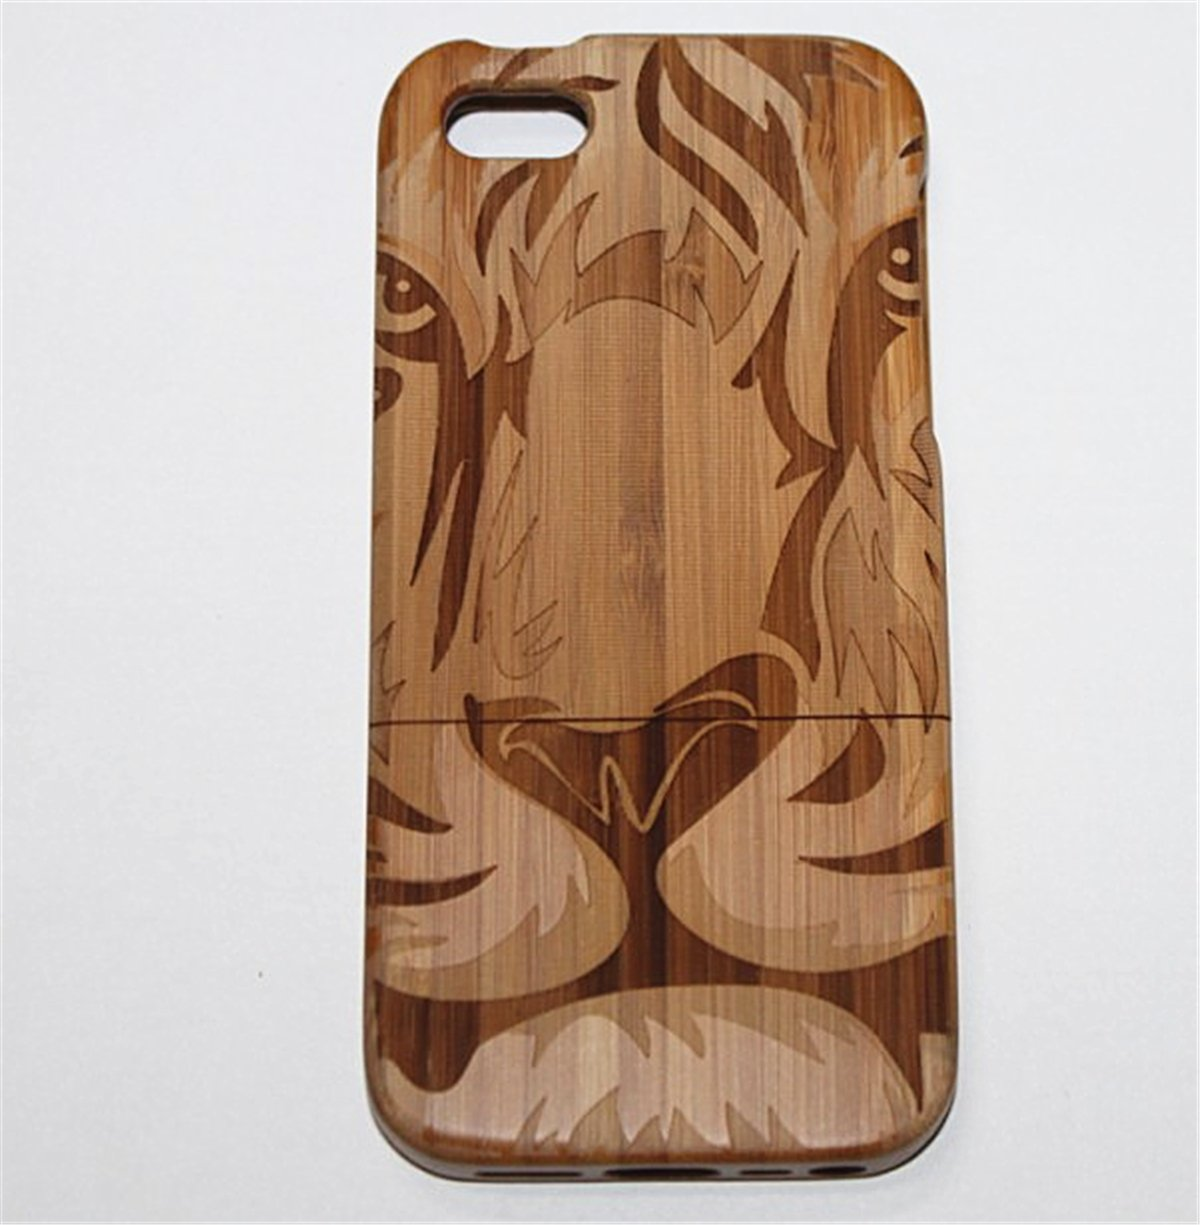 LG G3 Case, Firefish Tiger Pattern Natural Handmade Hard Wood Case Cove With Laser Engraved Shock & Scratch Protective For LG G3 ( With A Stylus) -Tiger